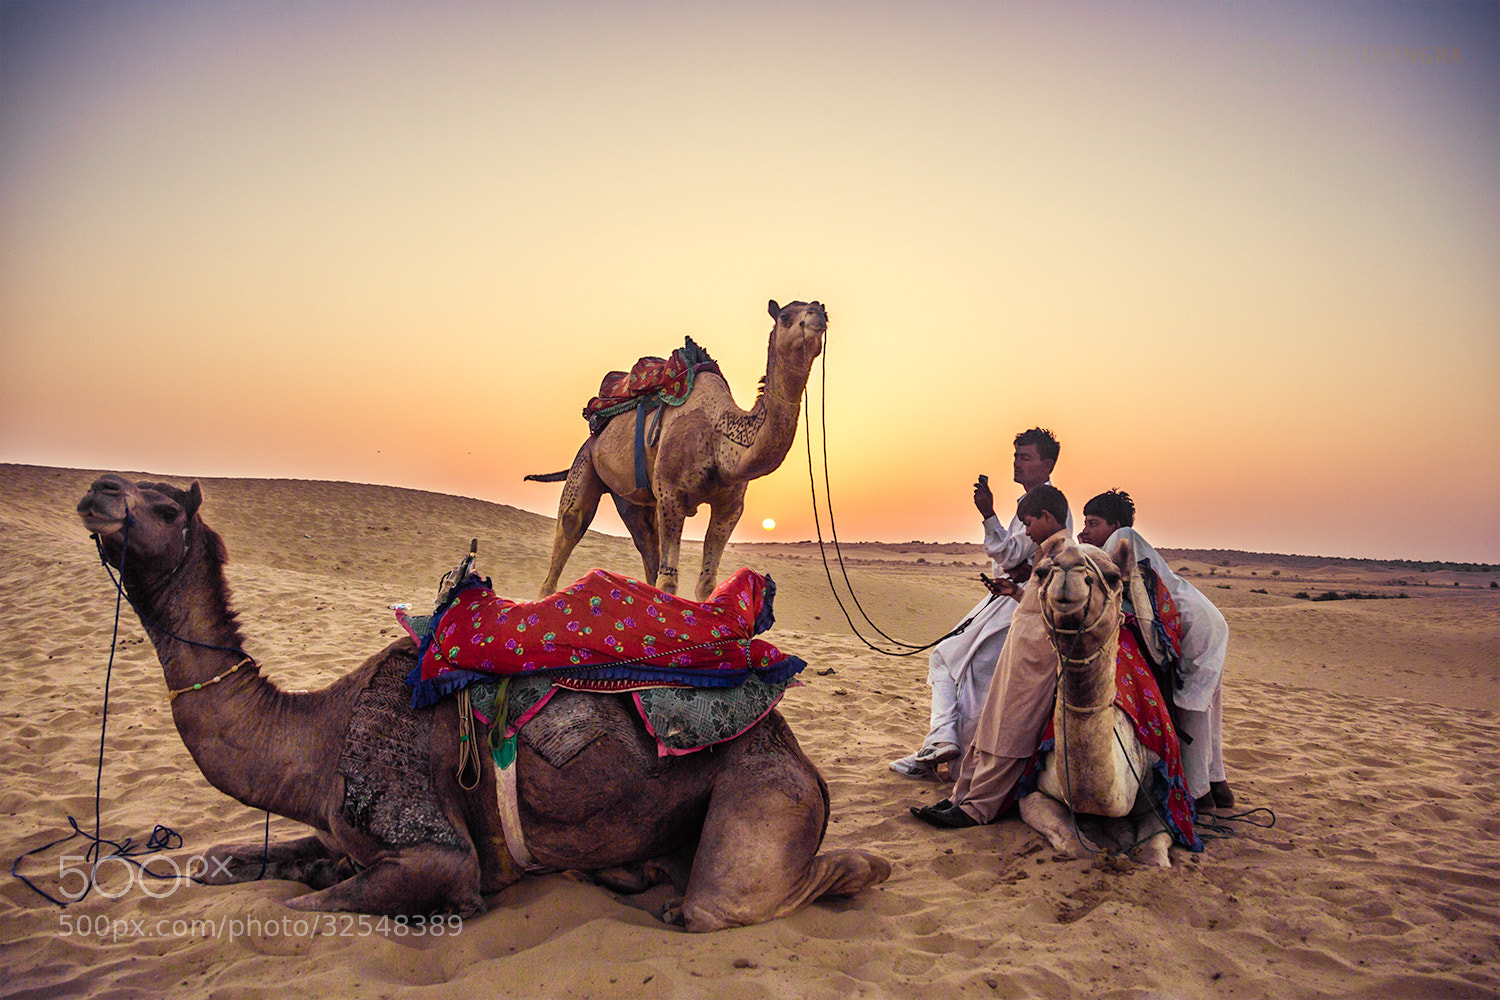 Photograph Sam Sand Dunes by Aman Dhingra on 500px